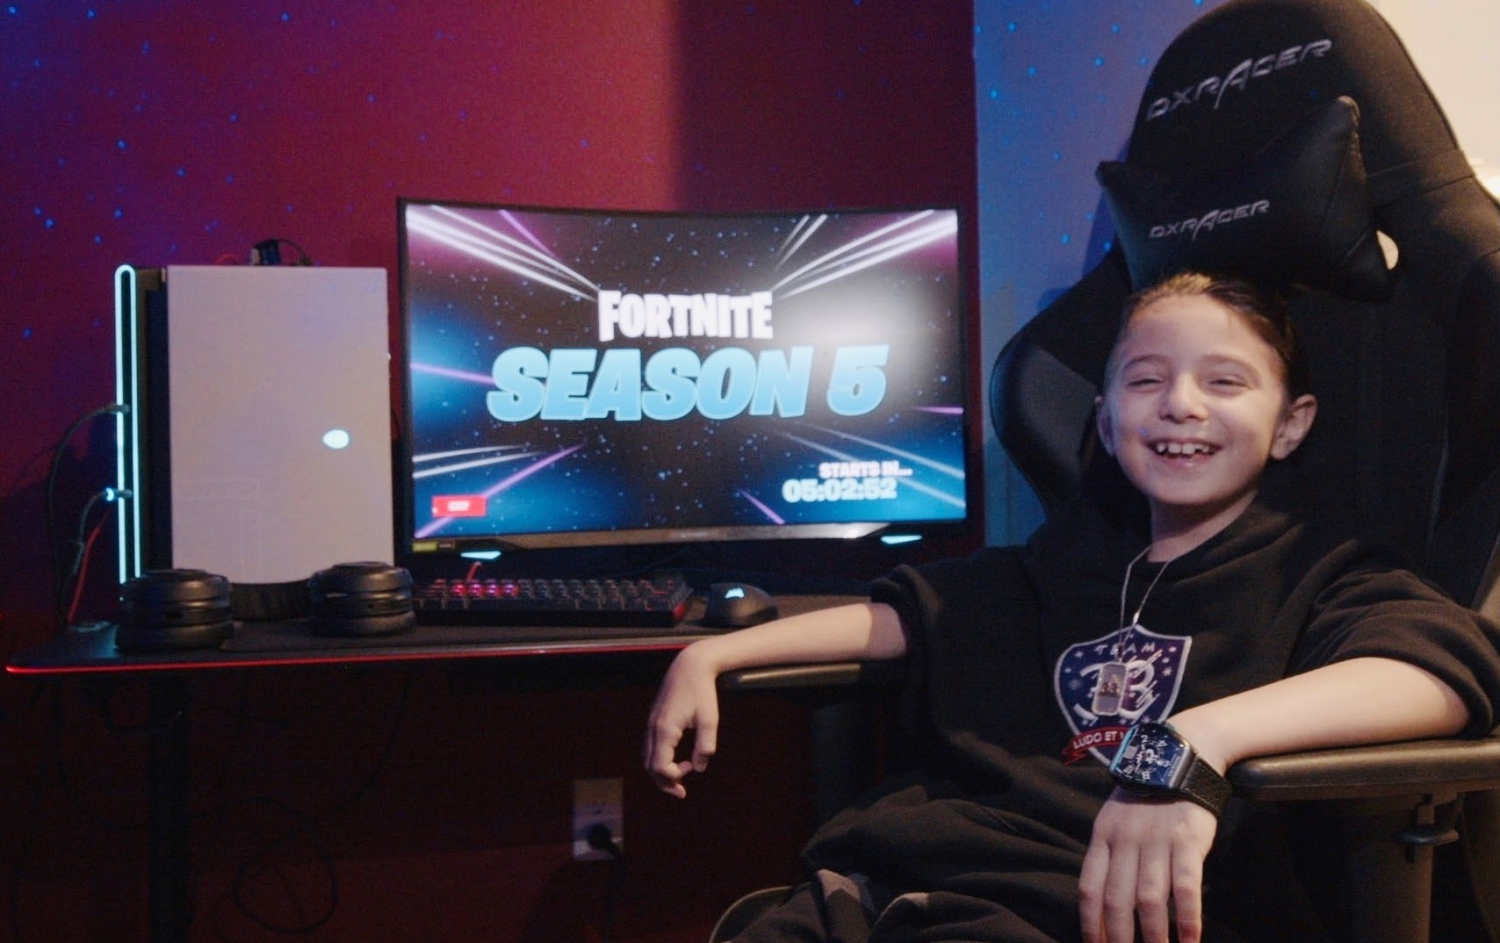 An 8-year-old just signed a $33,000 esports deal